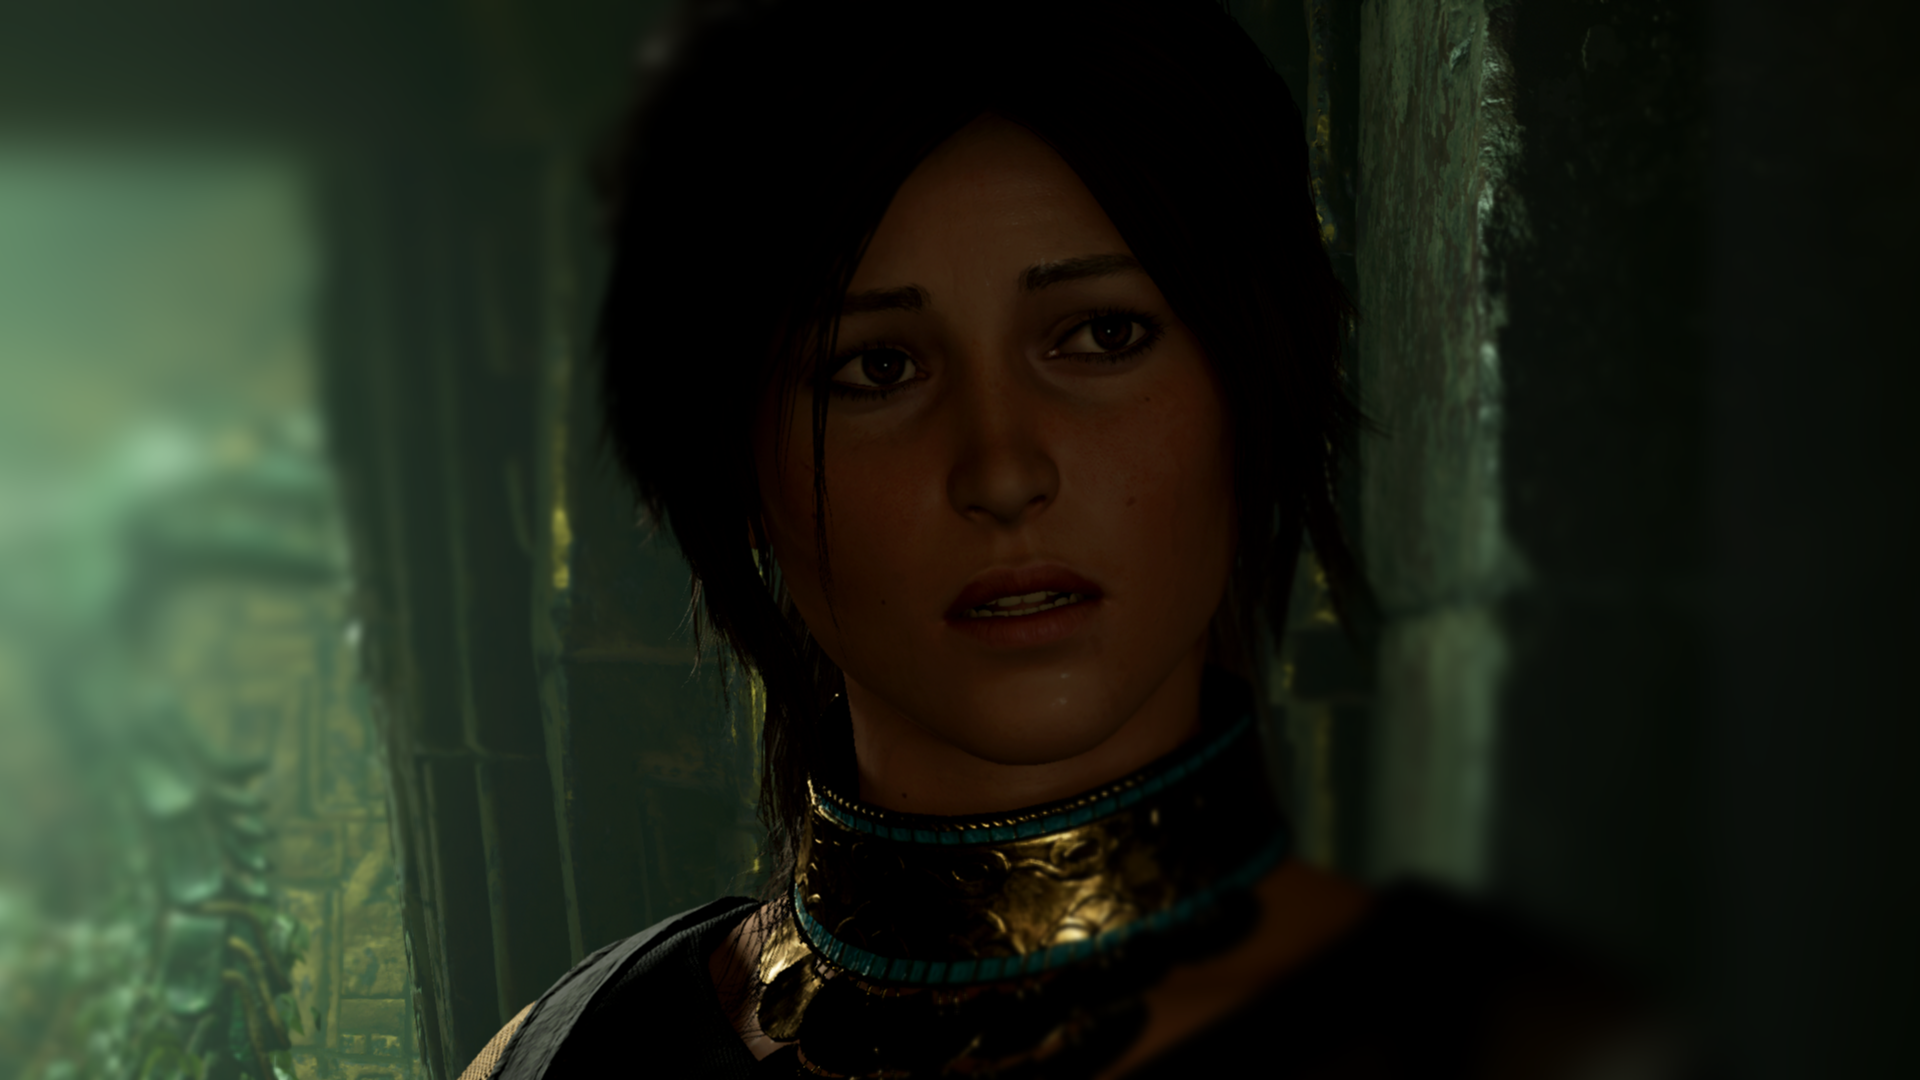 Shadow of the Tomb Raider Screenshot 2018.11.19 - 18.39.35.33.png - Shadow of the Tomb Raider